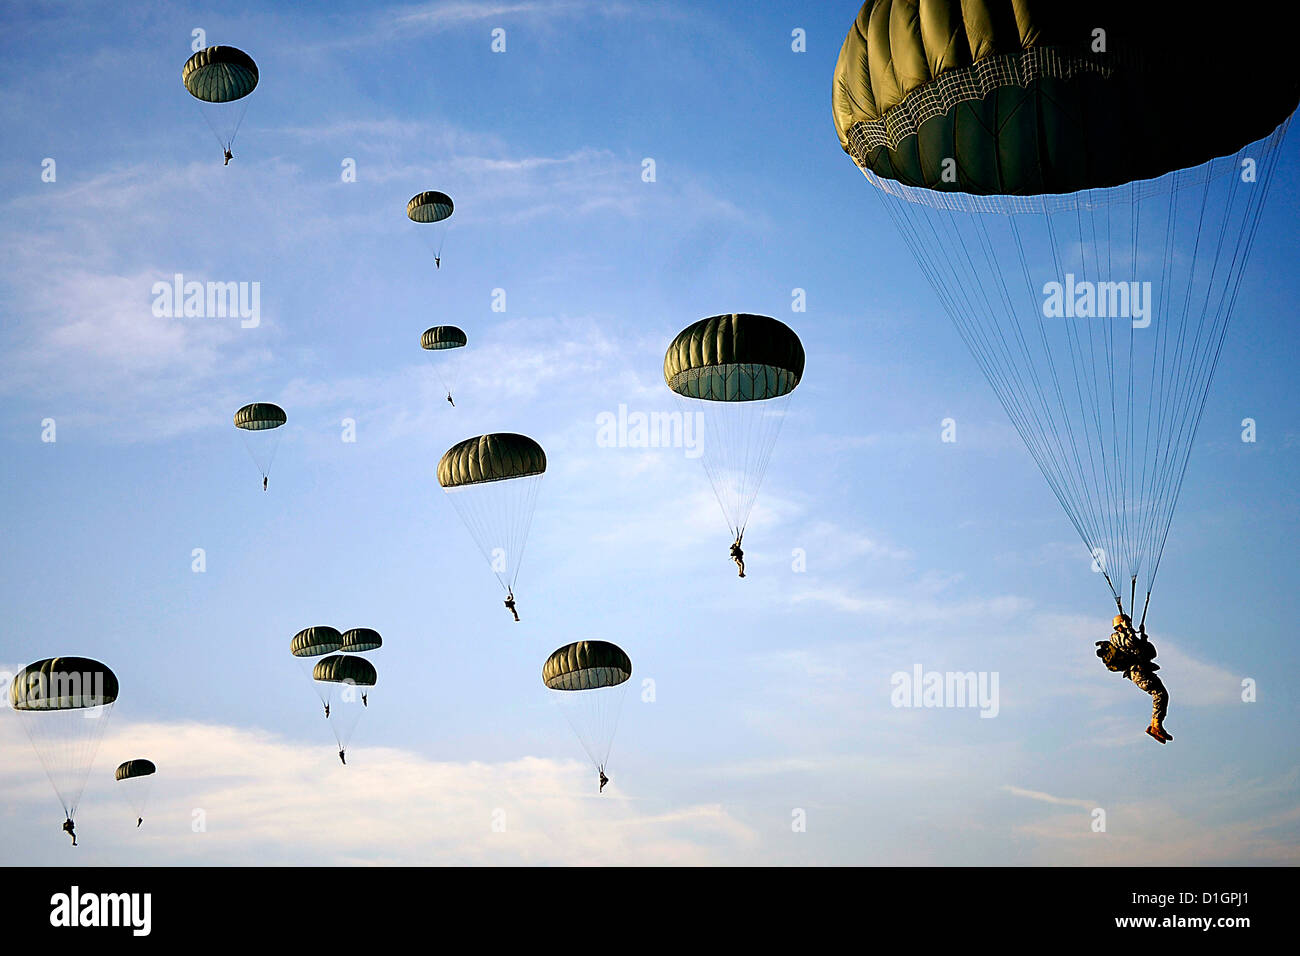 US Army Soldiers descend from an aircraft during Operation Toy Drop on Fort Bragg, North Carolina December 6, 2008. - Stock Image